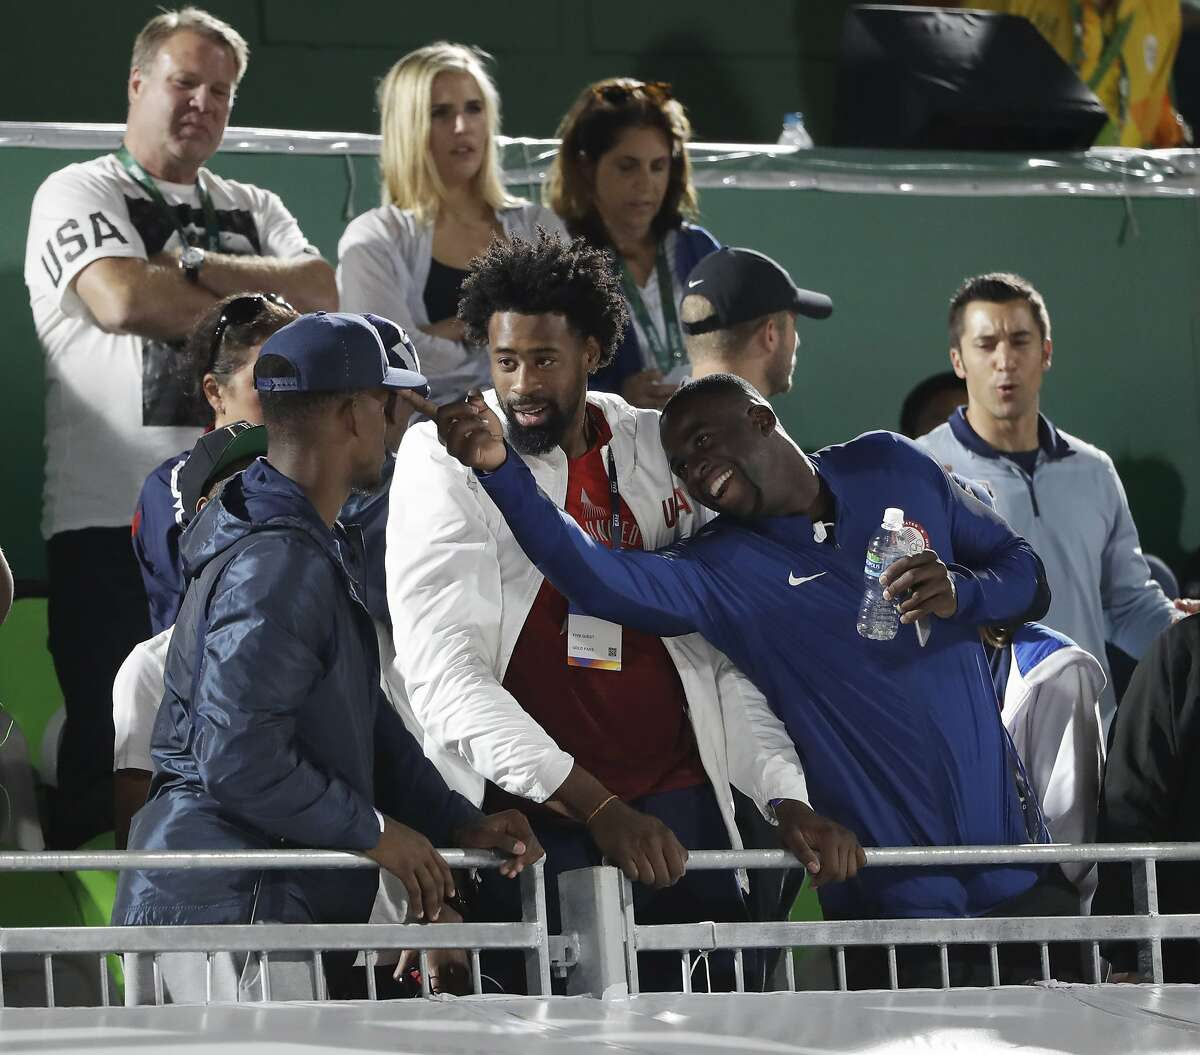 Members of the men's basketball team Jimmy Butler, from left, DeAndre Jordan and Draymond Green, of the United States, attend a women's beach volleyball quarterfinal match between Brazil and Russia at the 2016 Summer Olympics in Rio de Janeiro, Brazil, Sunday, Aug. 14, 2016. (AP Photo/Marcio Jose Sanchez)